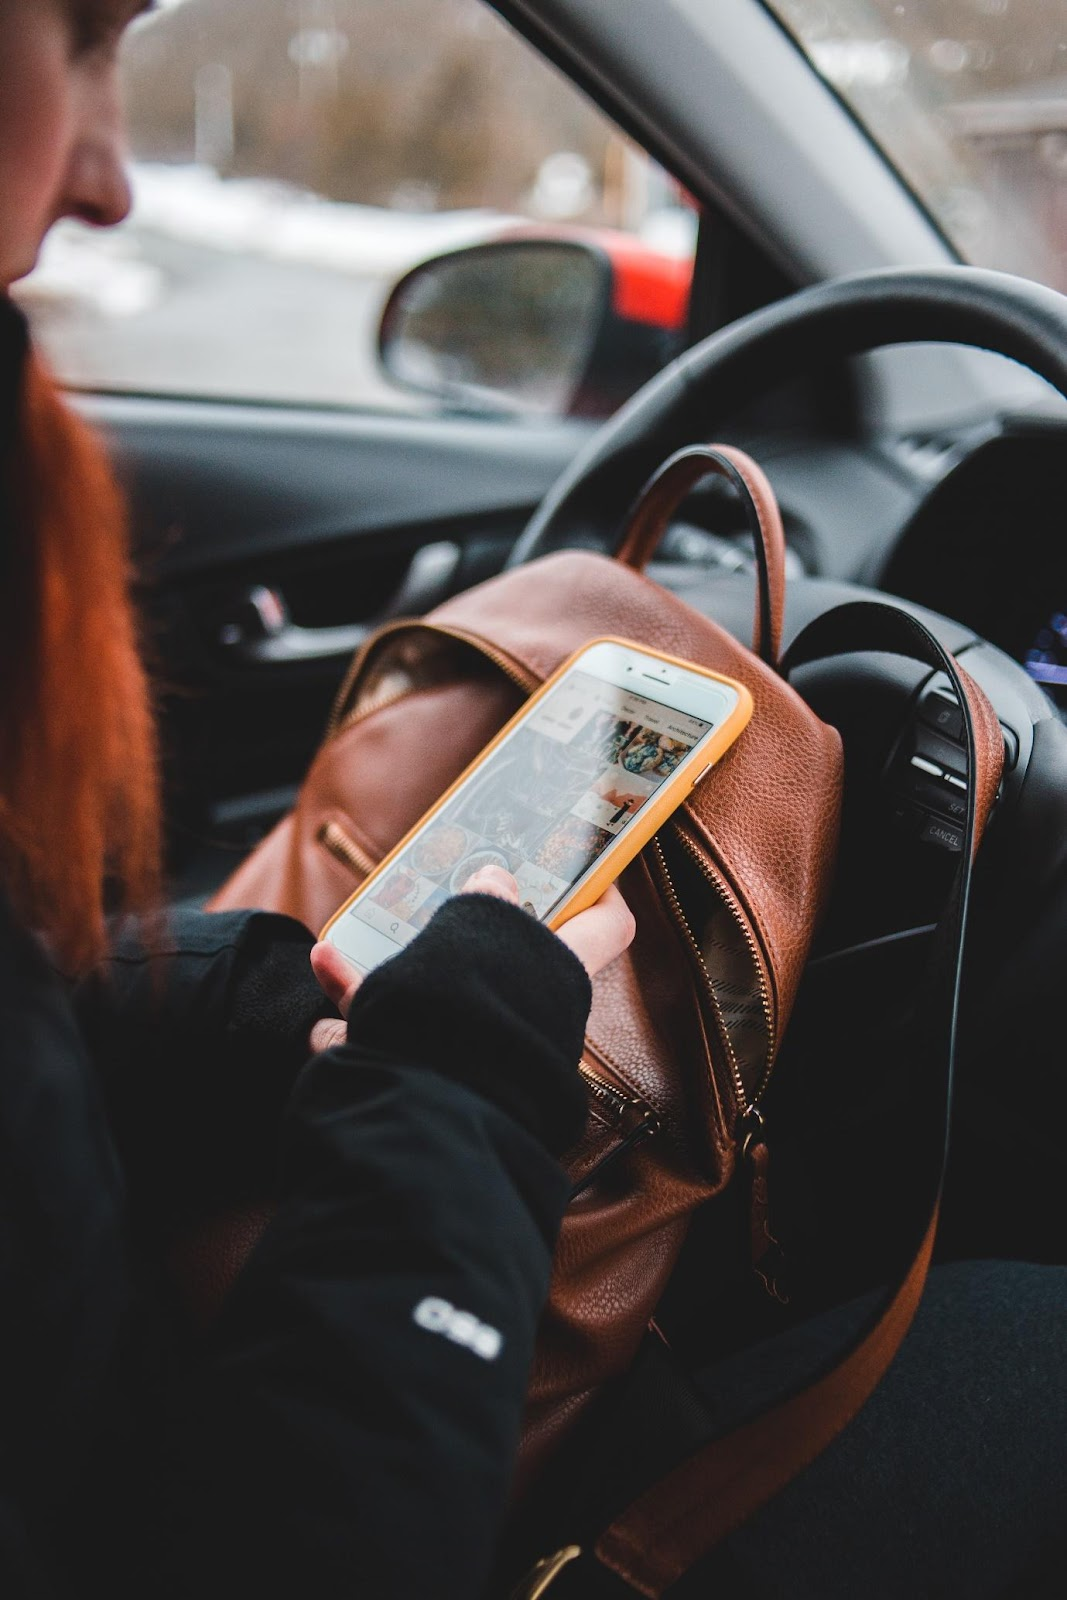 A person reading a book in a car  Description automatically generated with medium confidence